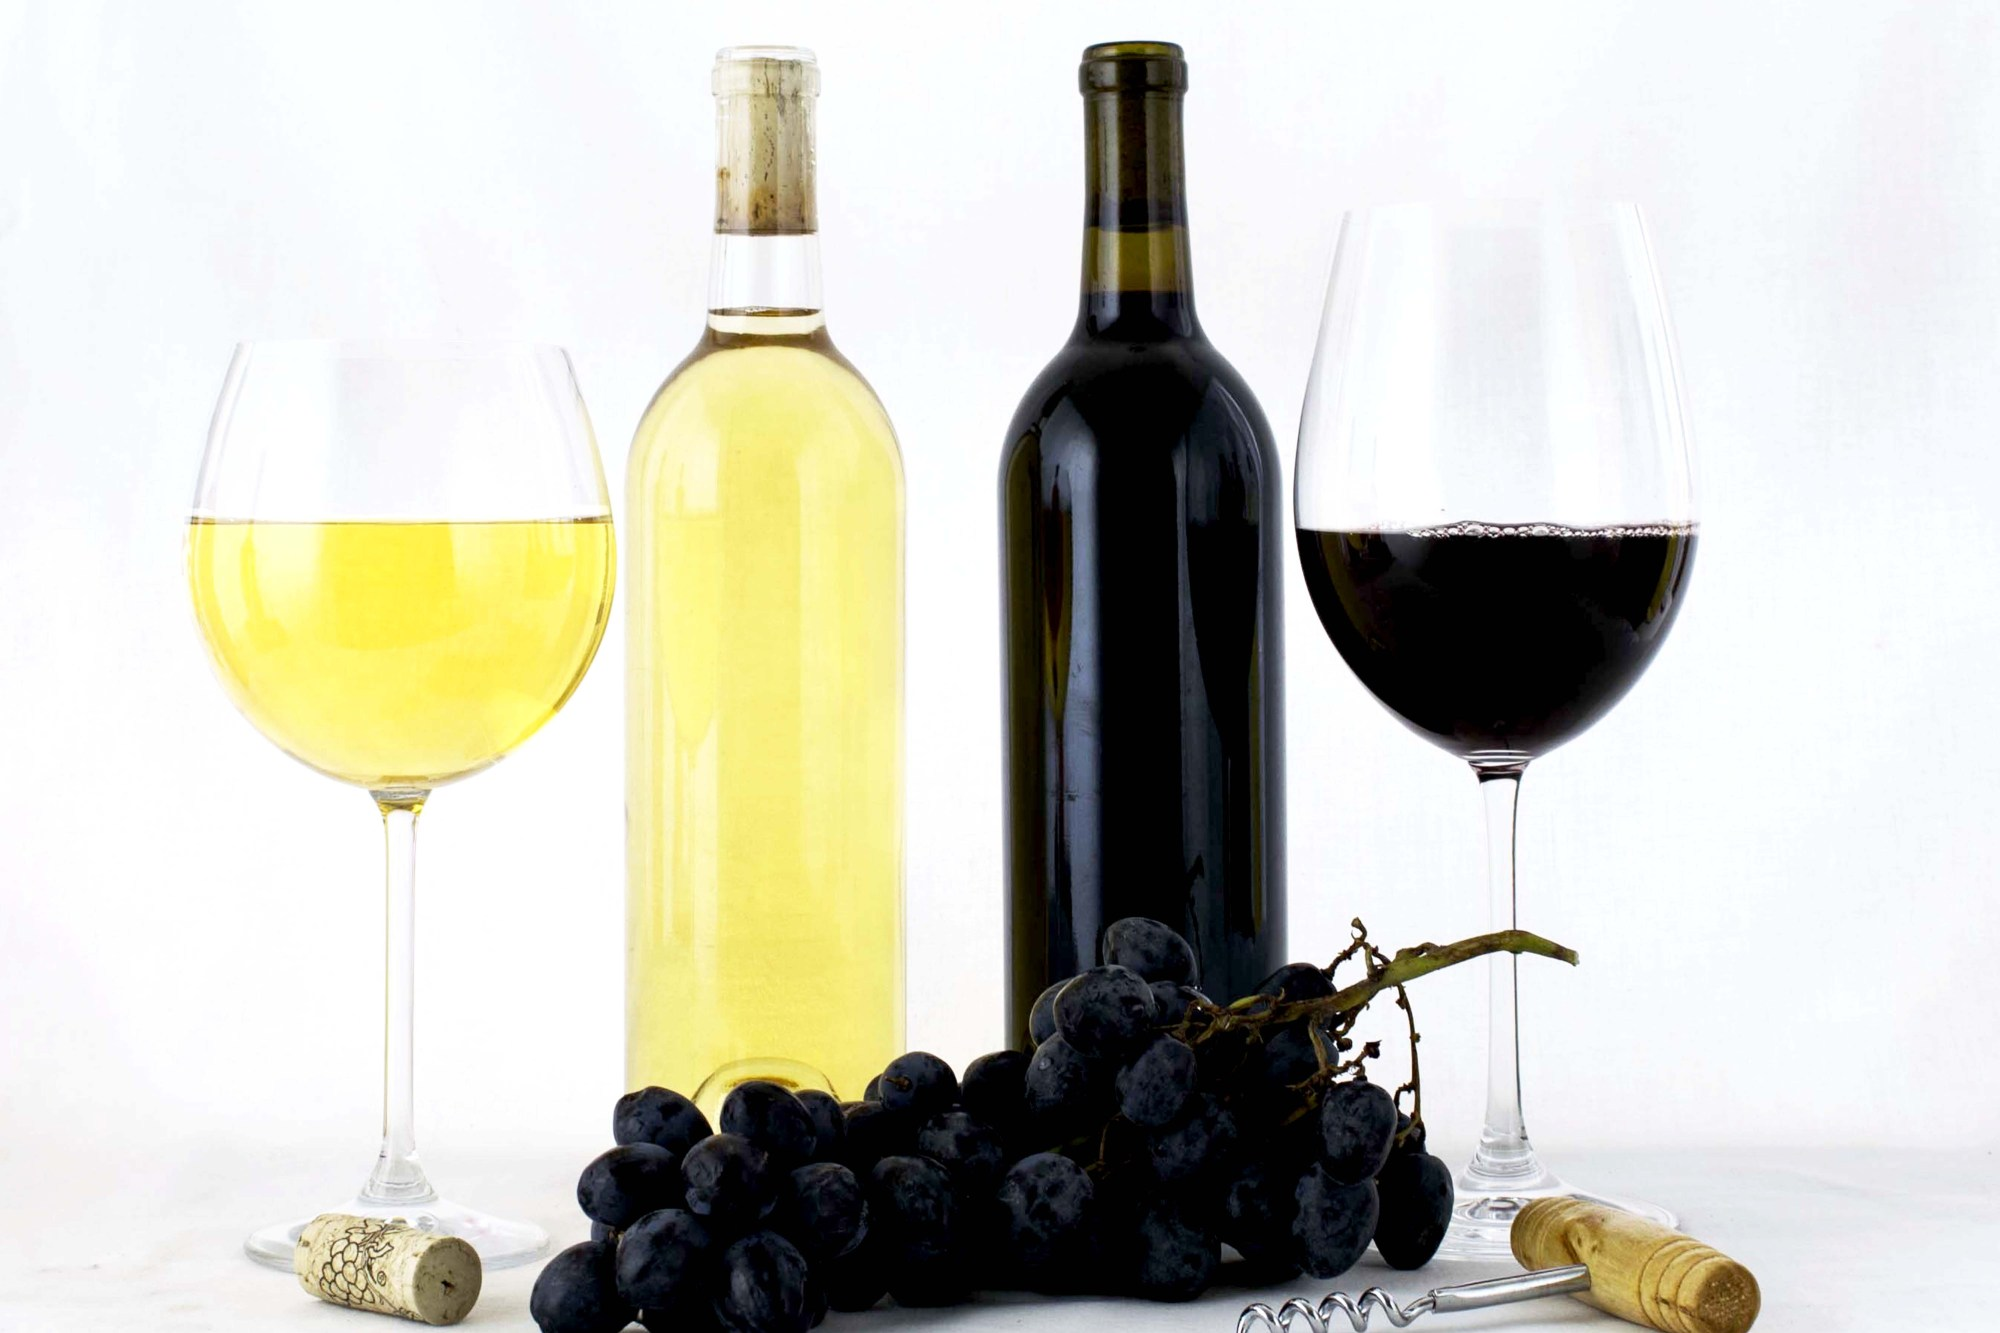 Custom Wine Making and Lab Services, from Grape to Glass